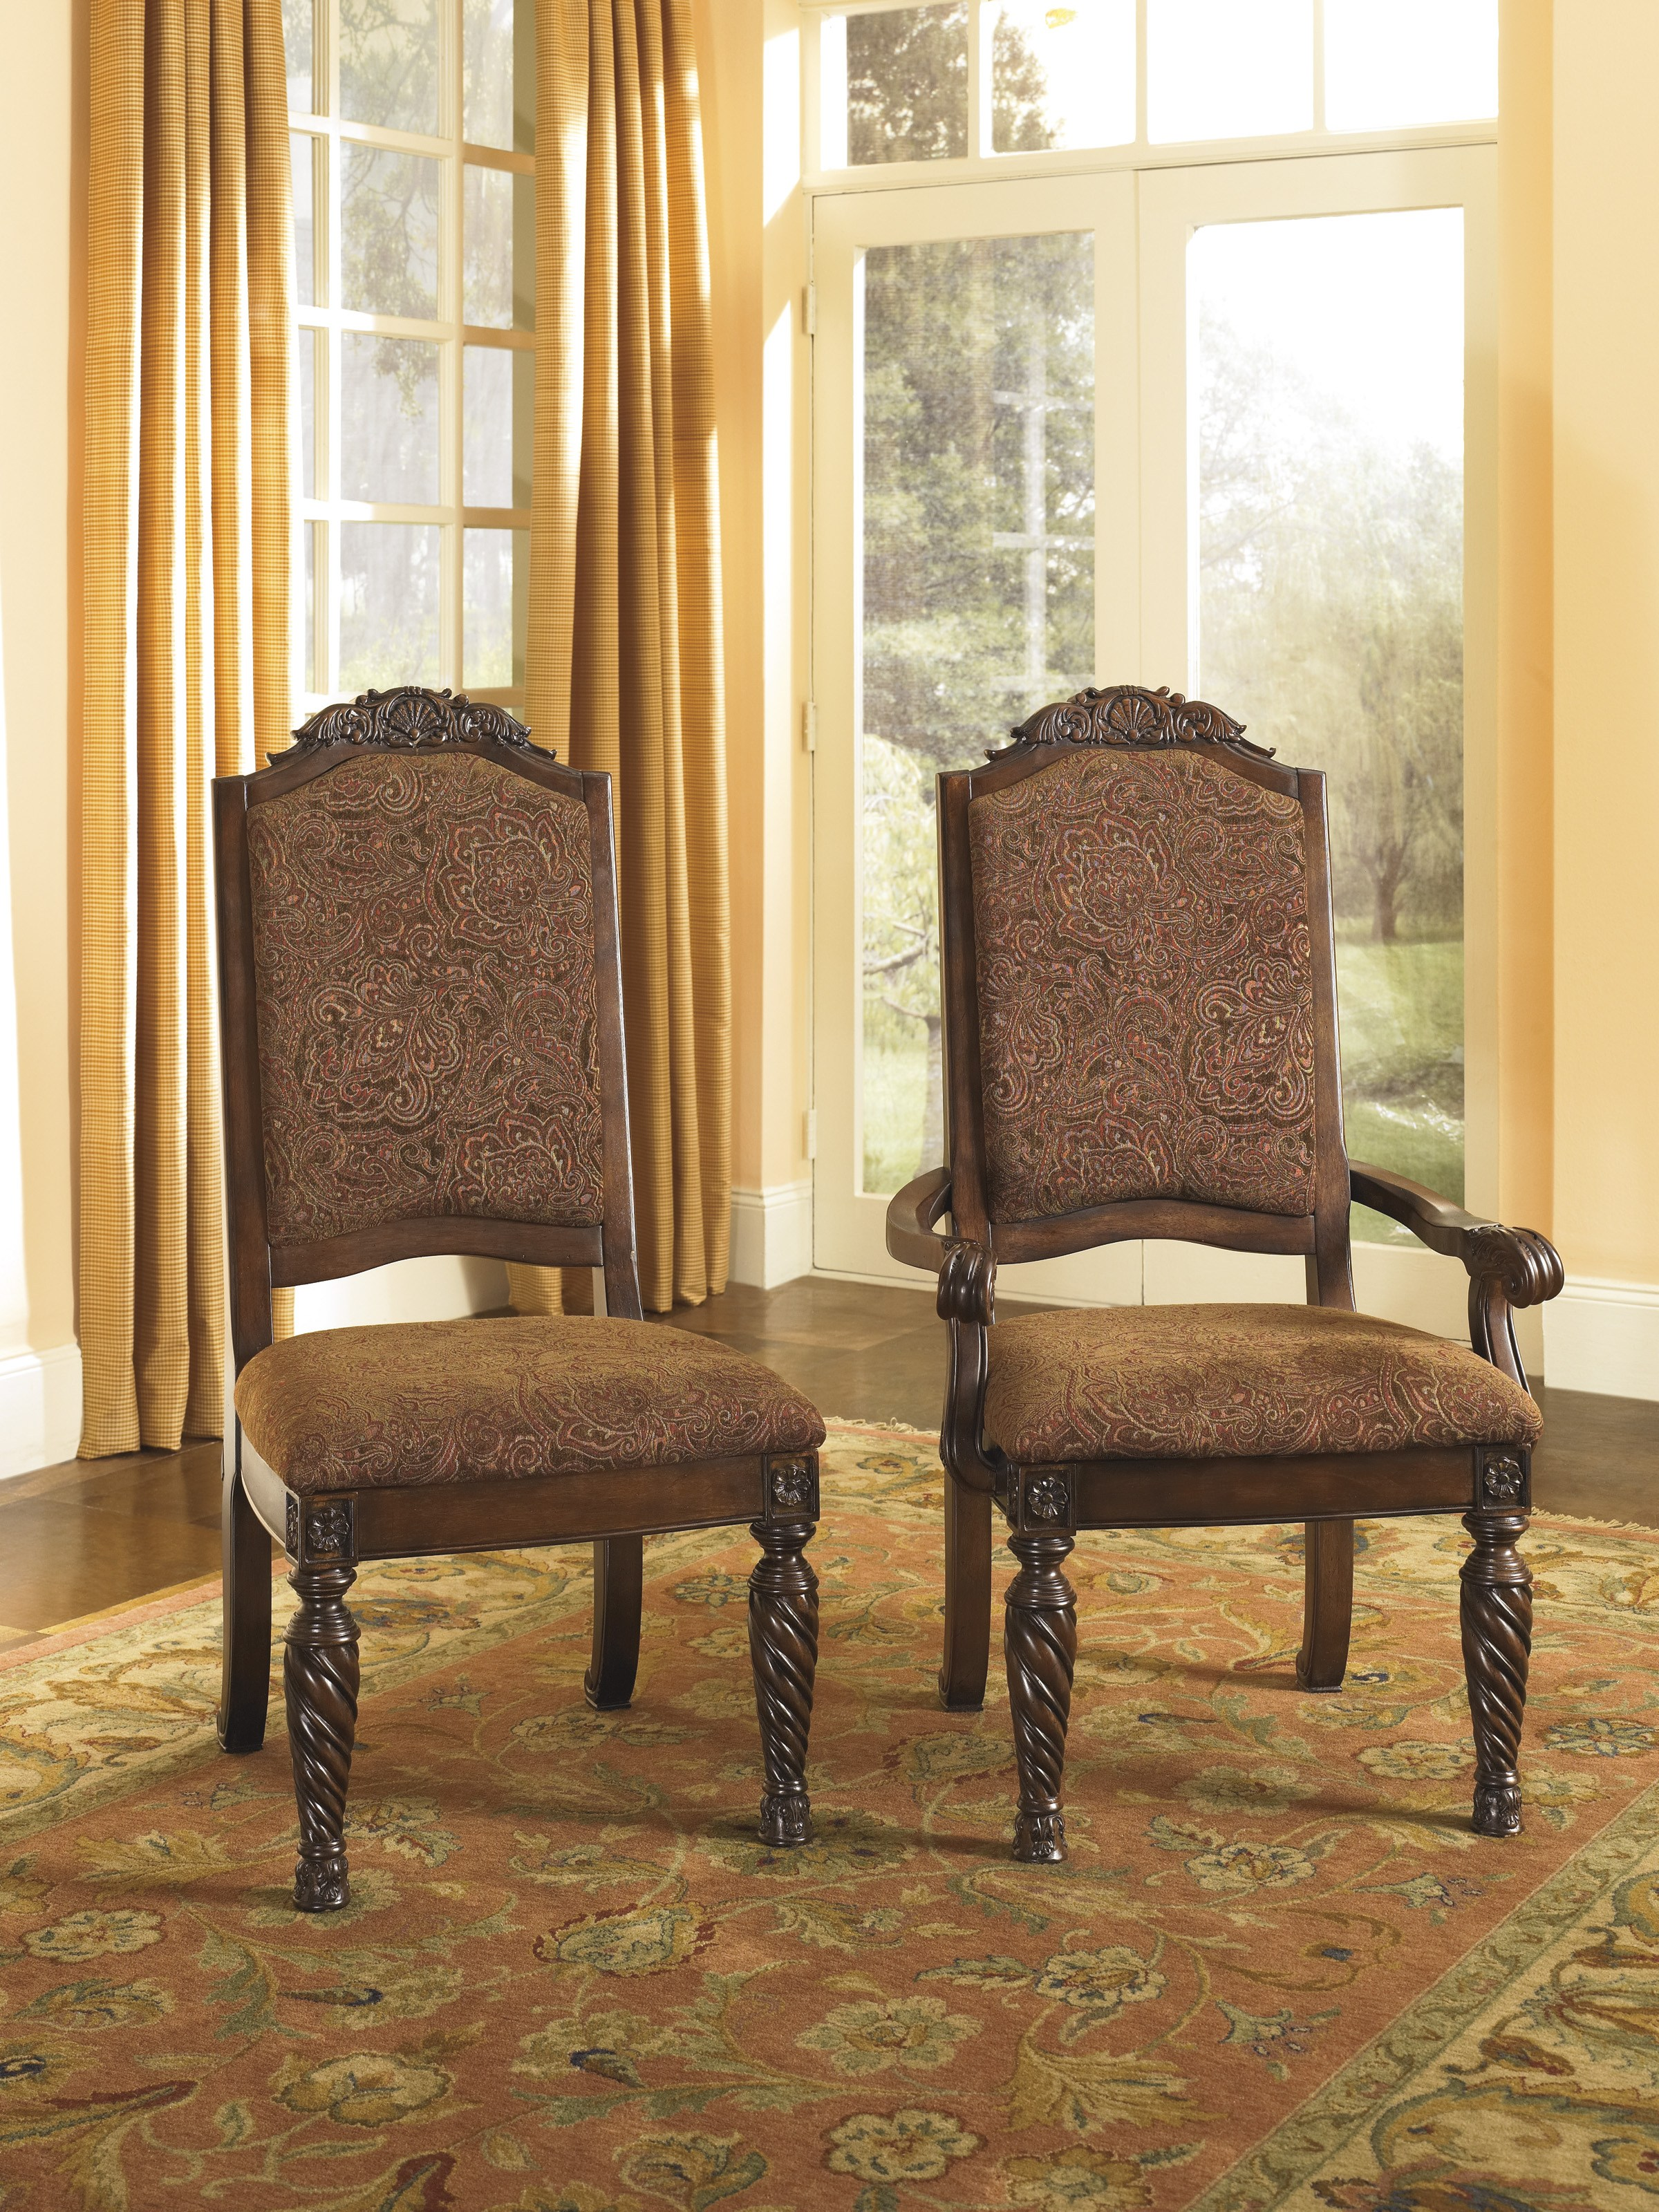 North S Upholstered Arm Chair